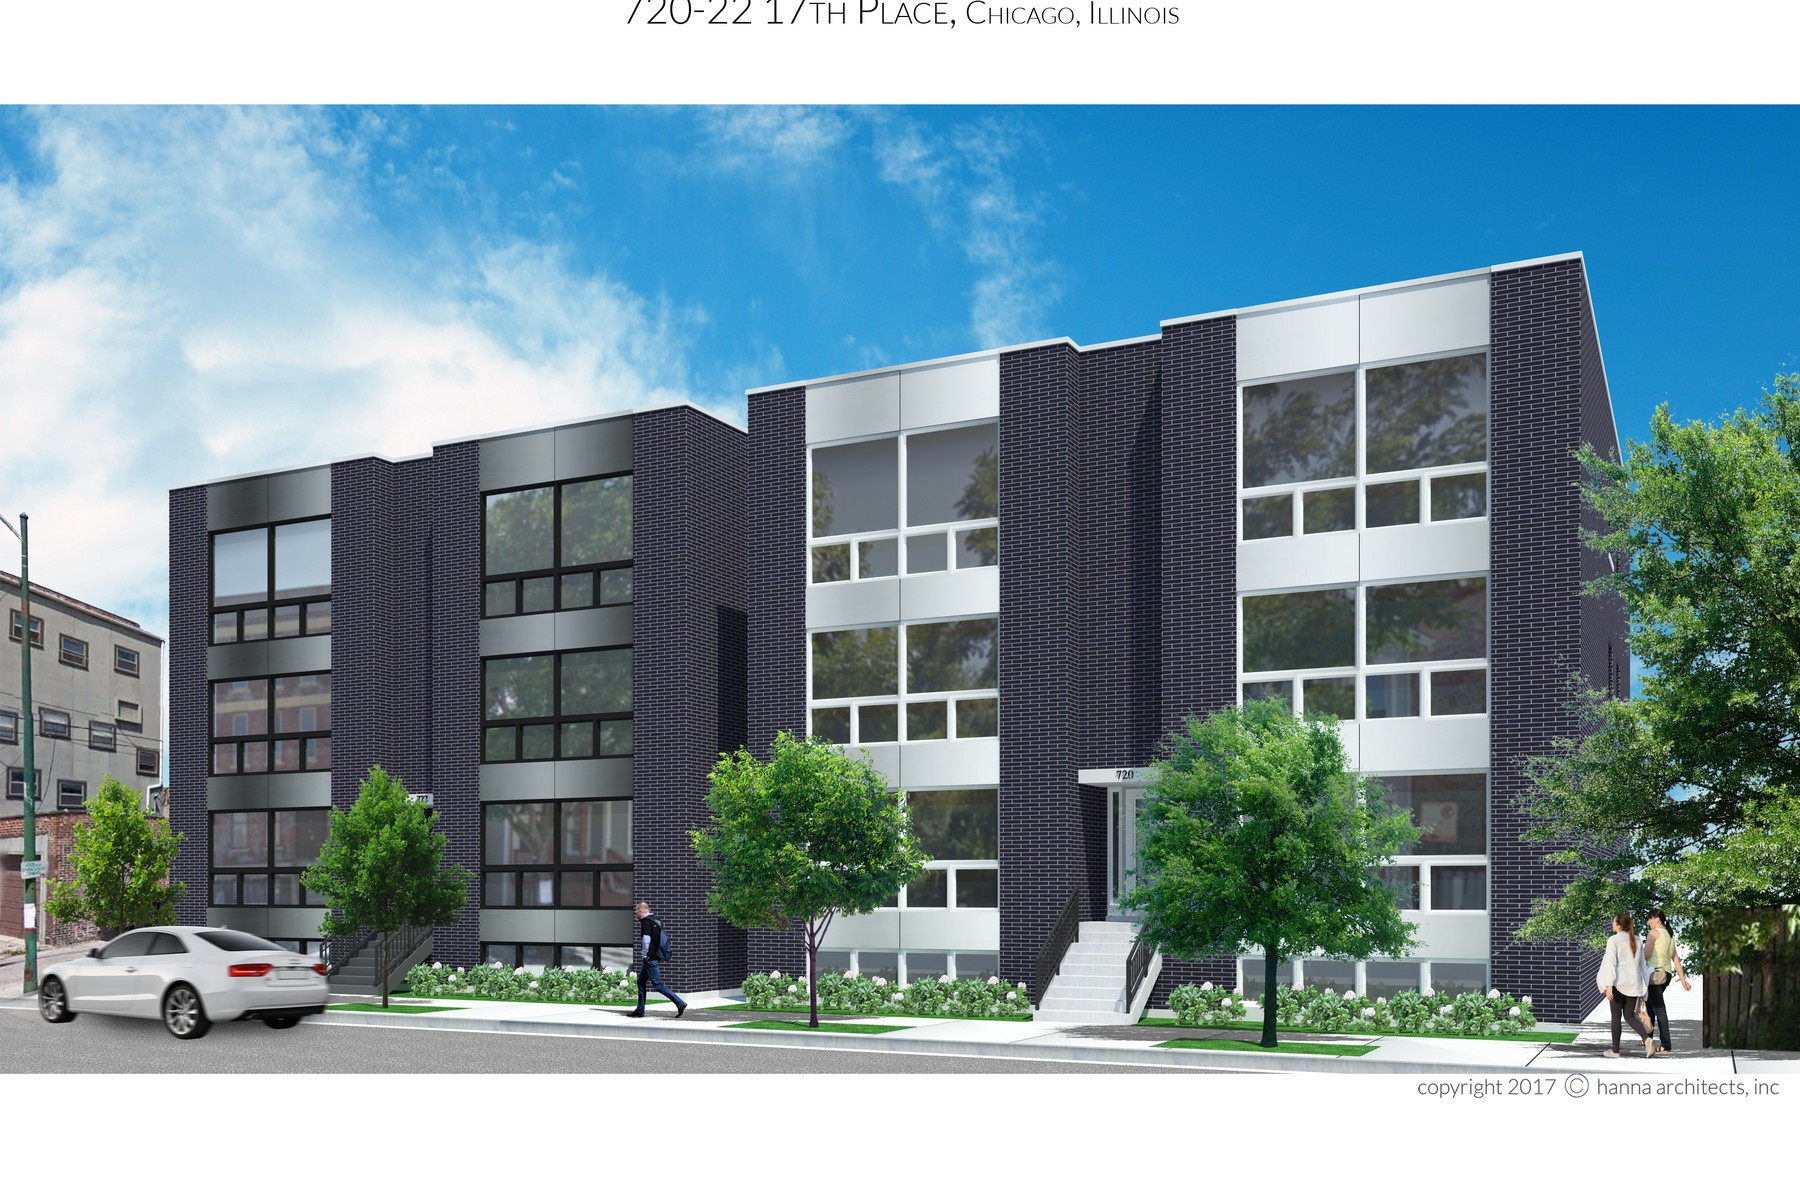 共管物業 為 出售 在 New Construction Six-Unit Building 722 W 17th Place West Unit 2W, Chicago, 伊利諾斯州, 60616 美國